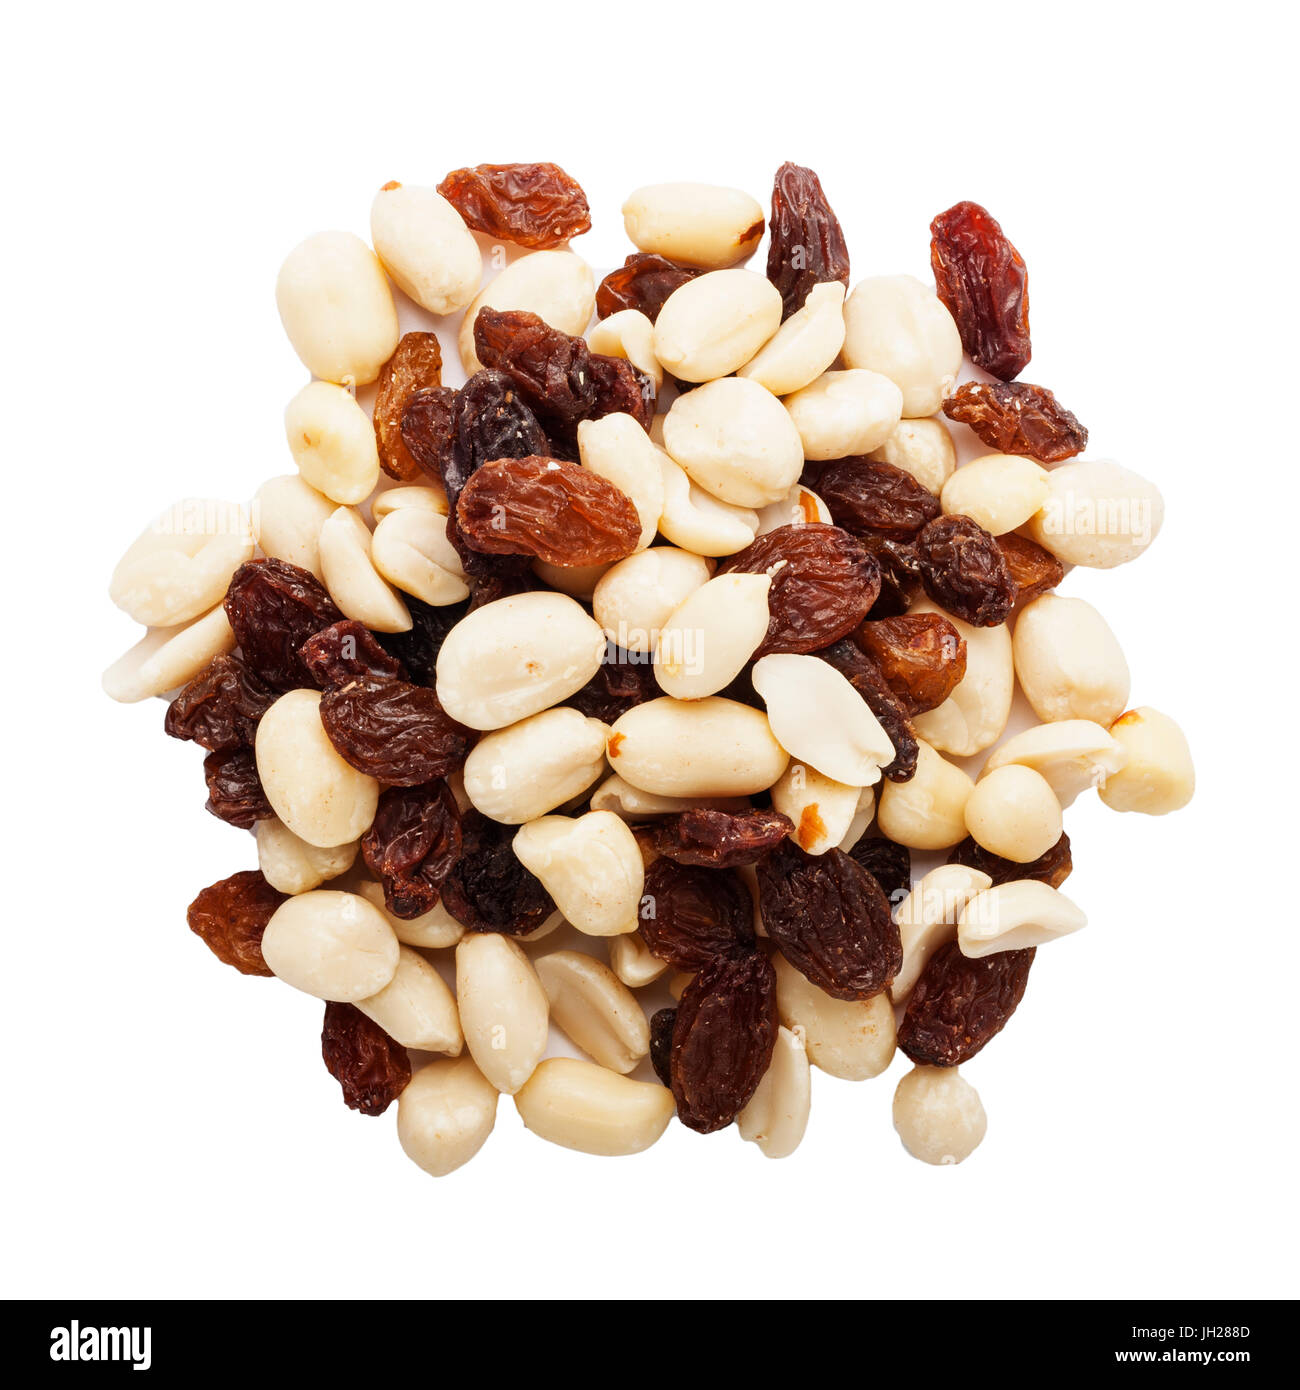 Peanuts and raisins on a white background - Stock Image